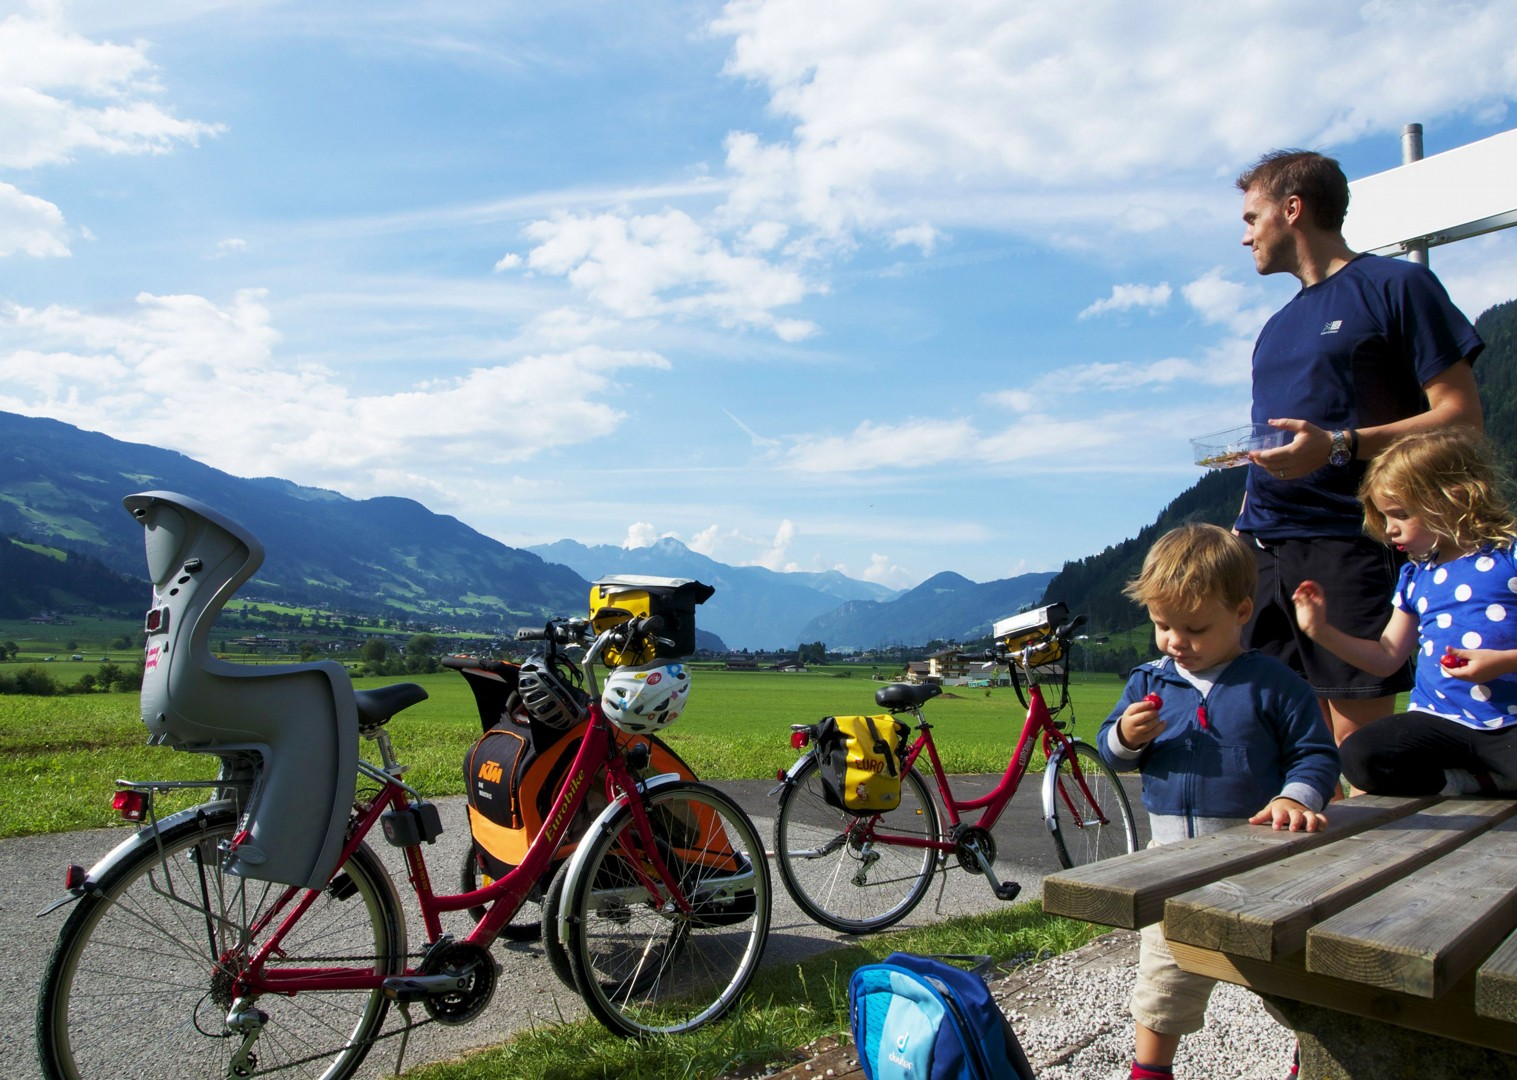 european-cycling-family-holiday-skedaddle.jpg - NEW! Austria - Tauern Valleys - Self-Guided Family Cycling Holiday - Family Cycling